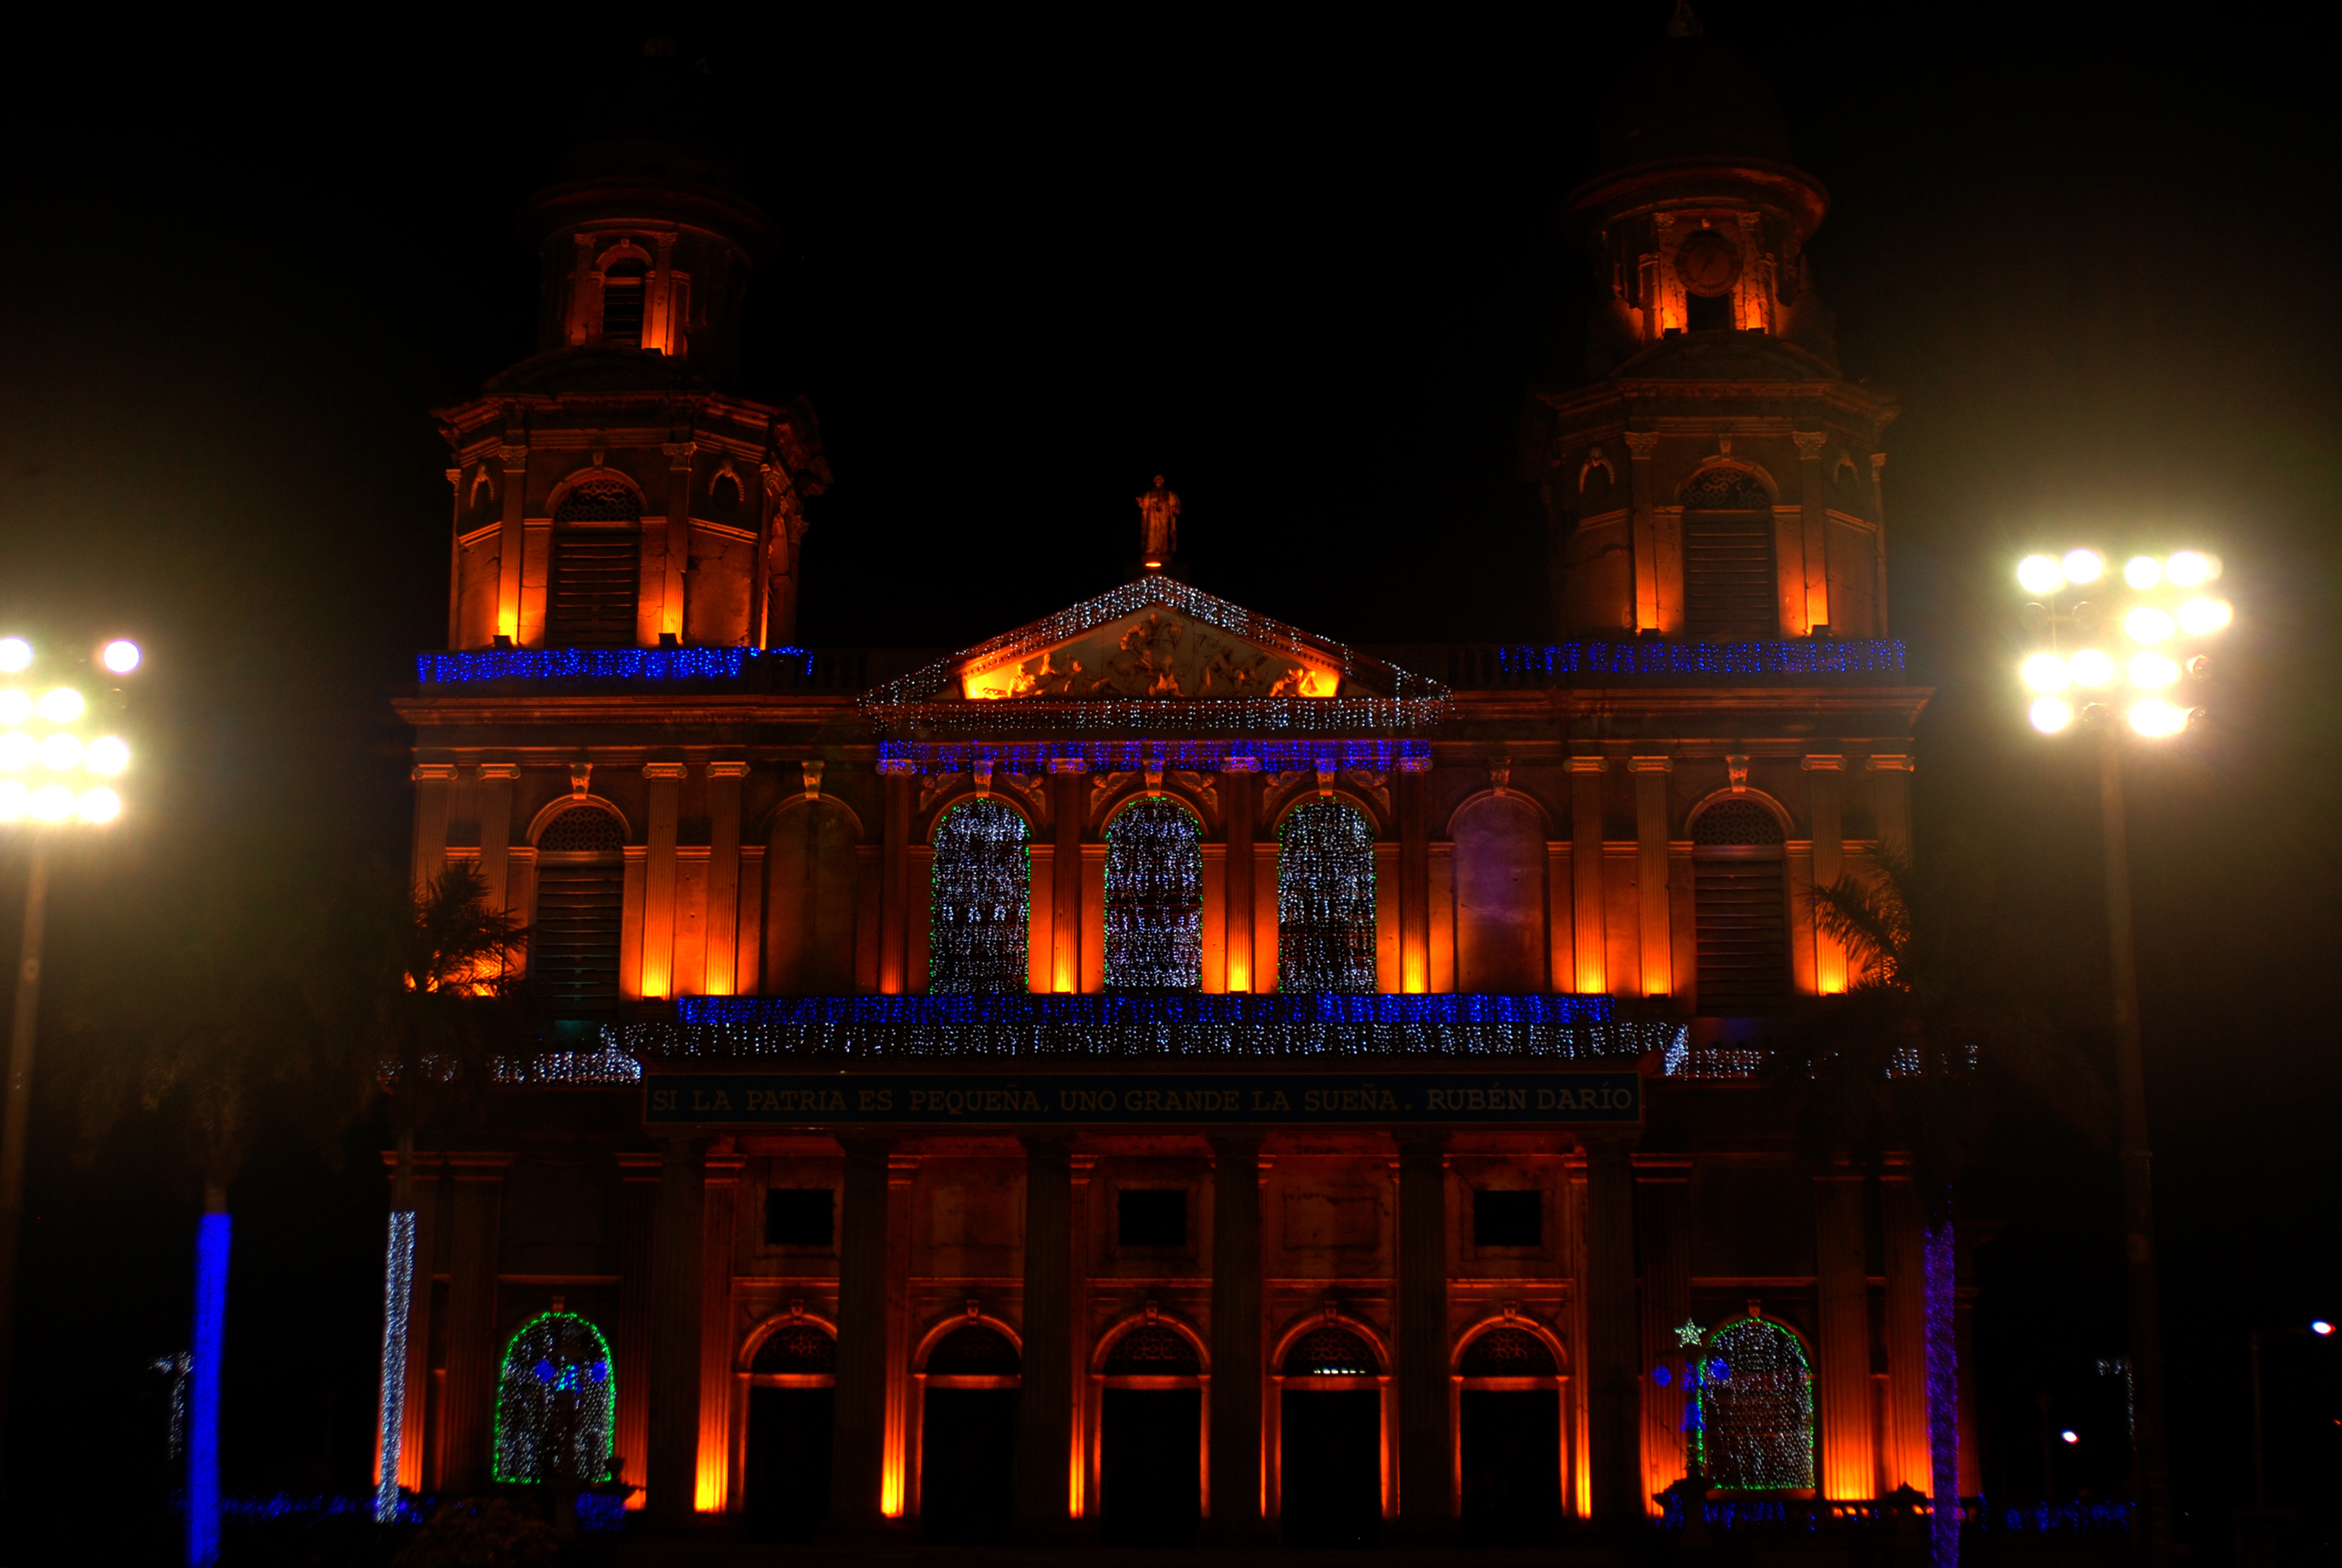 Managua's Old Catedral, Architecture, Building, Night, HQ Photo